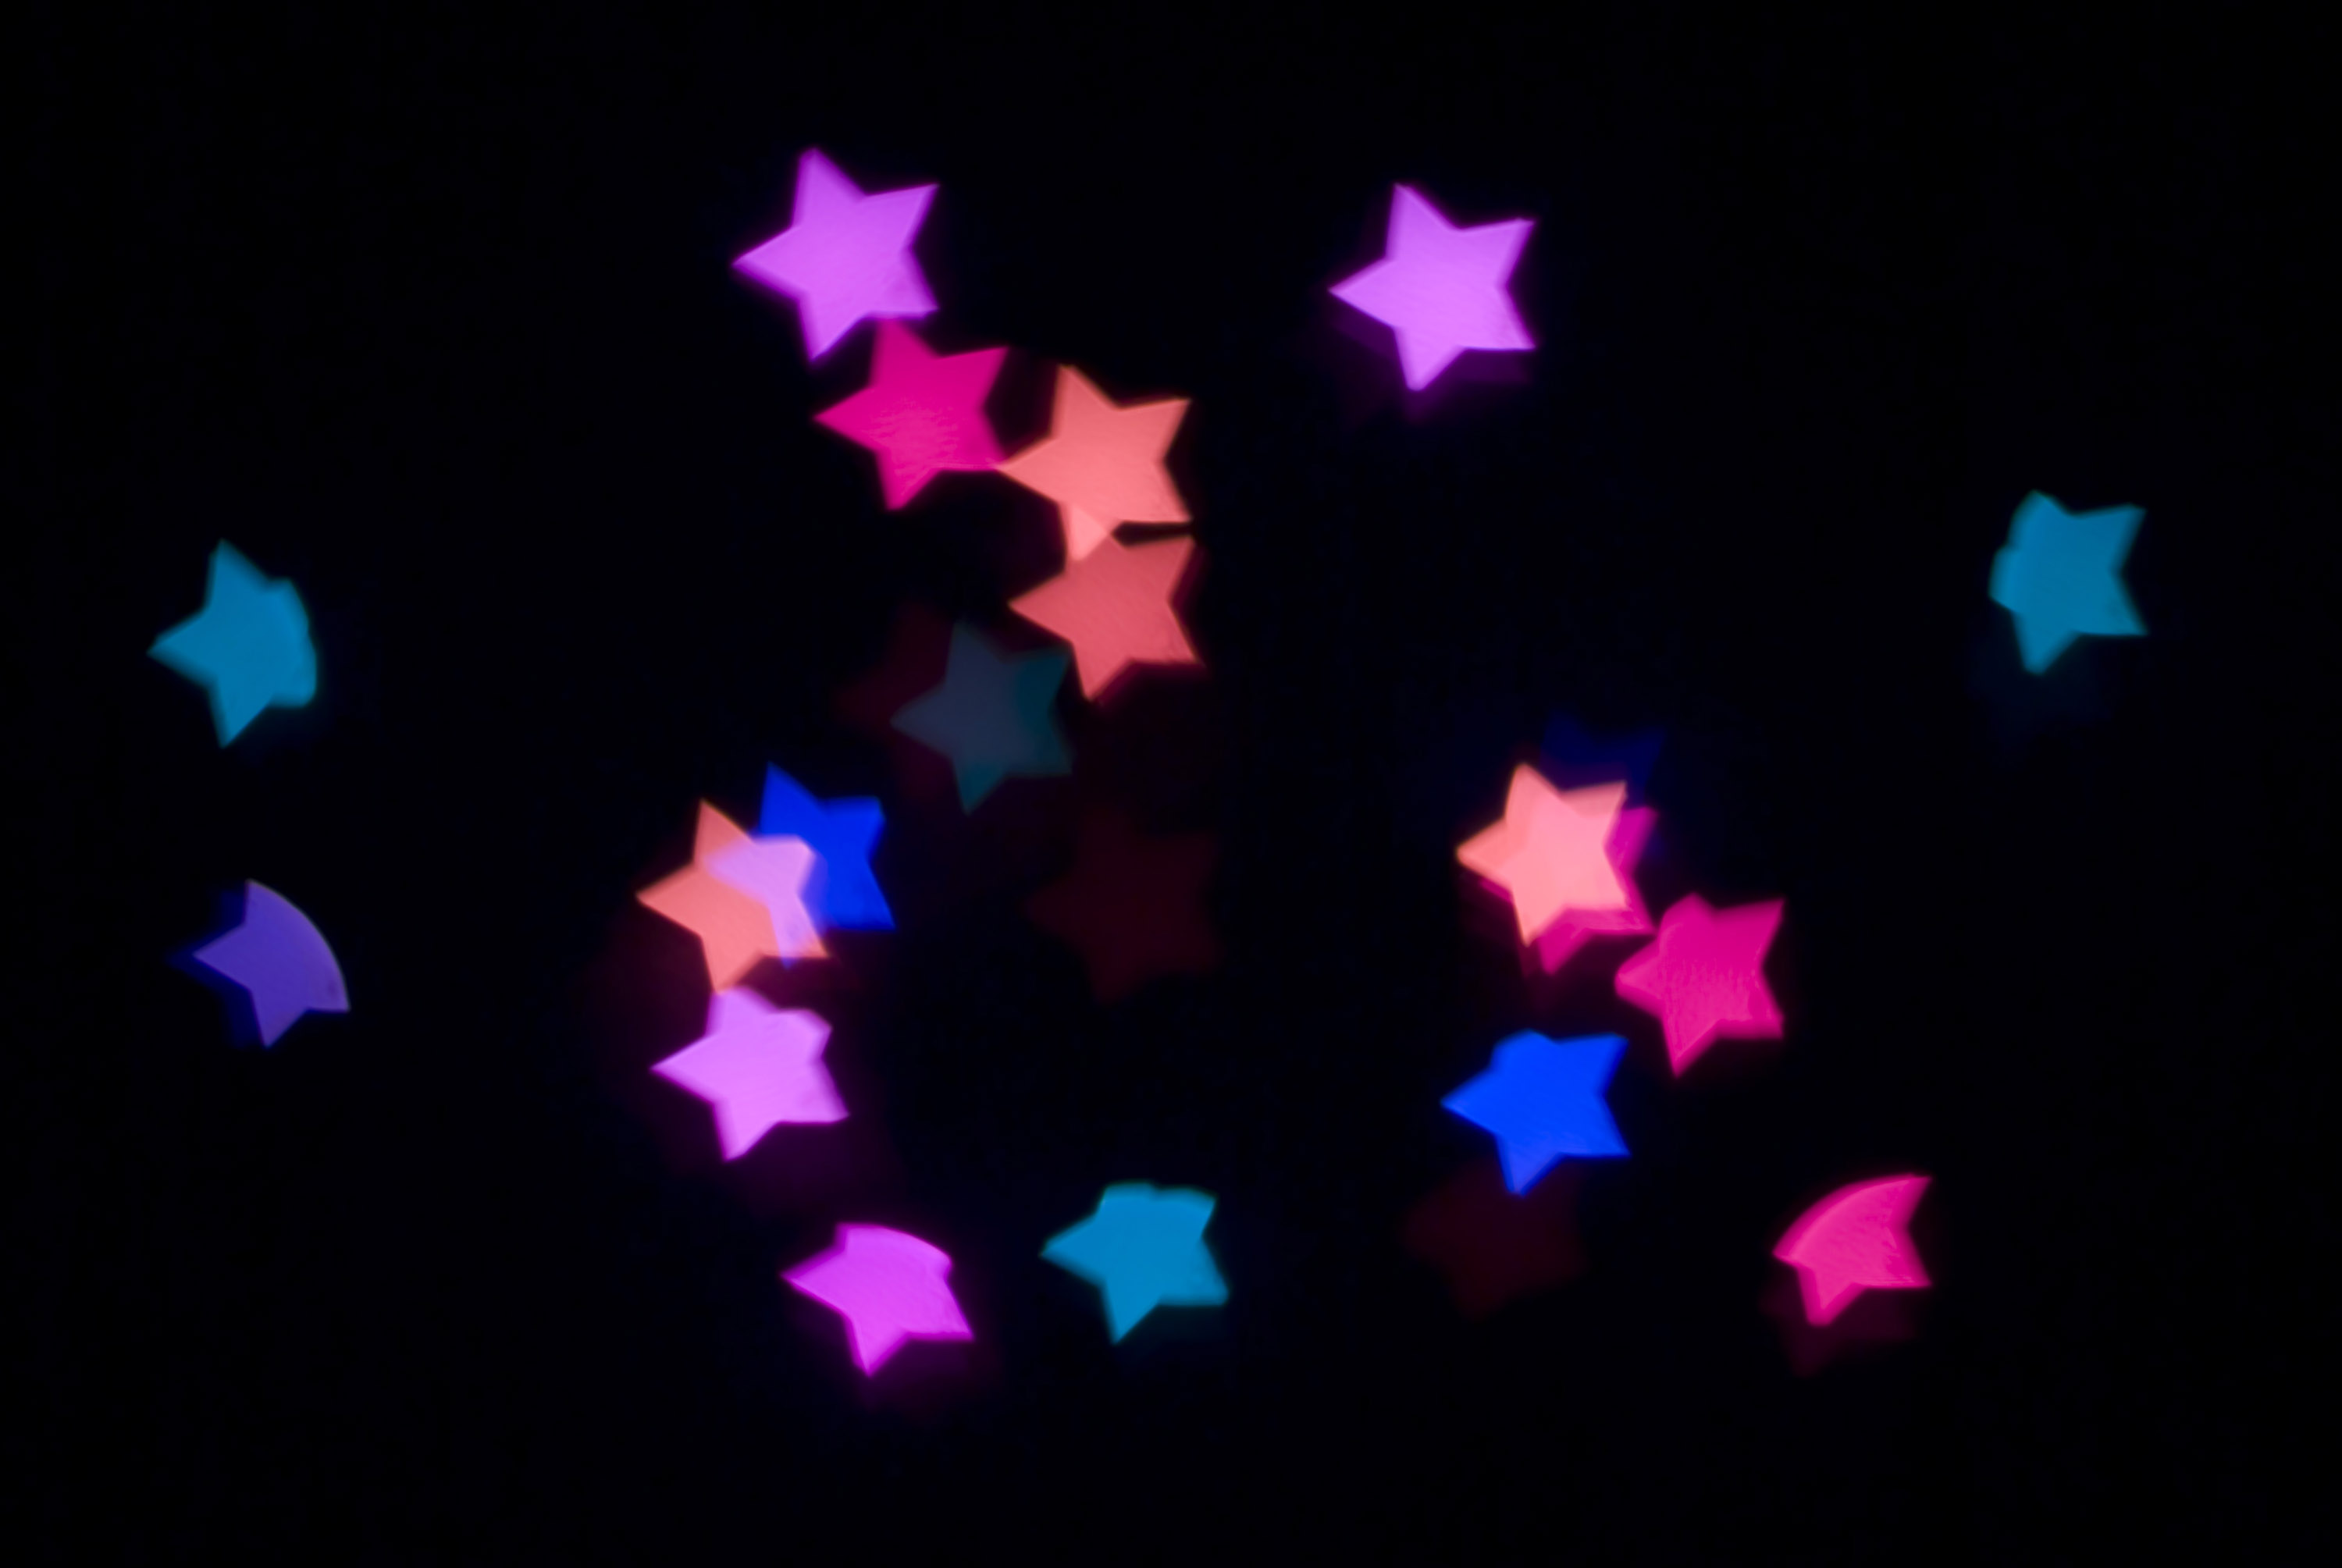 a backdrop of glowing lens bokeh star shapes